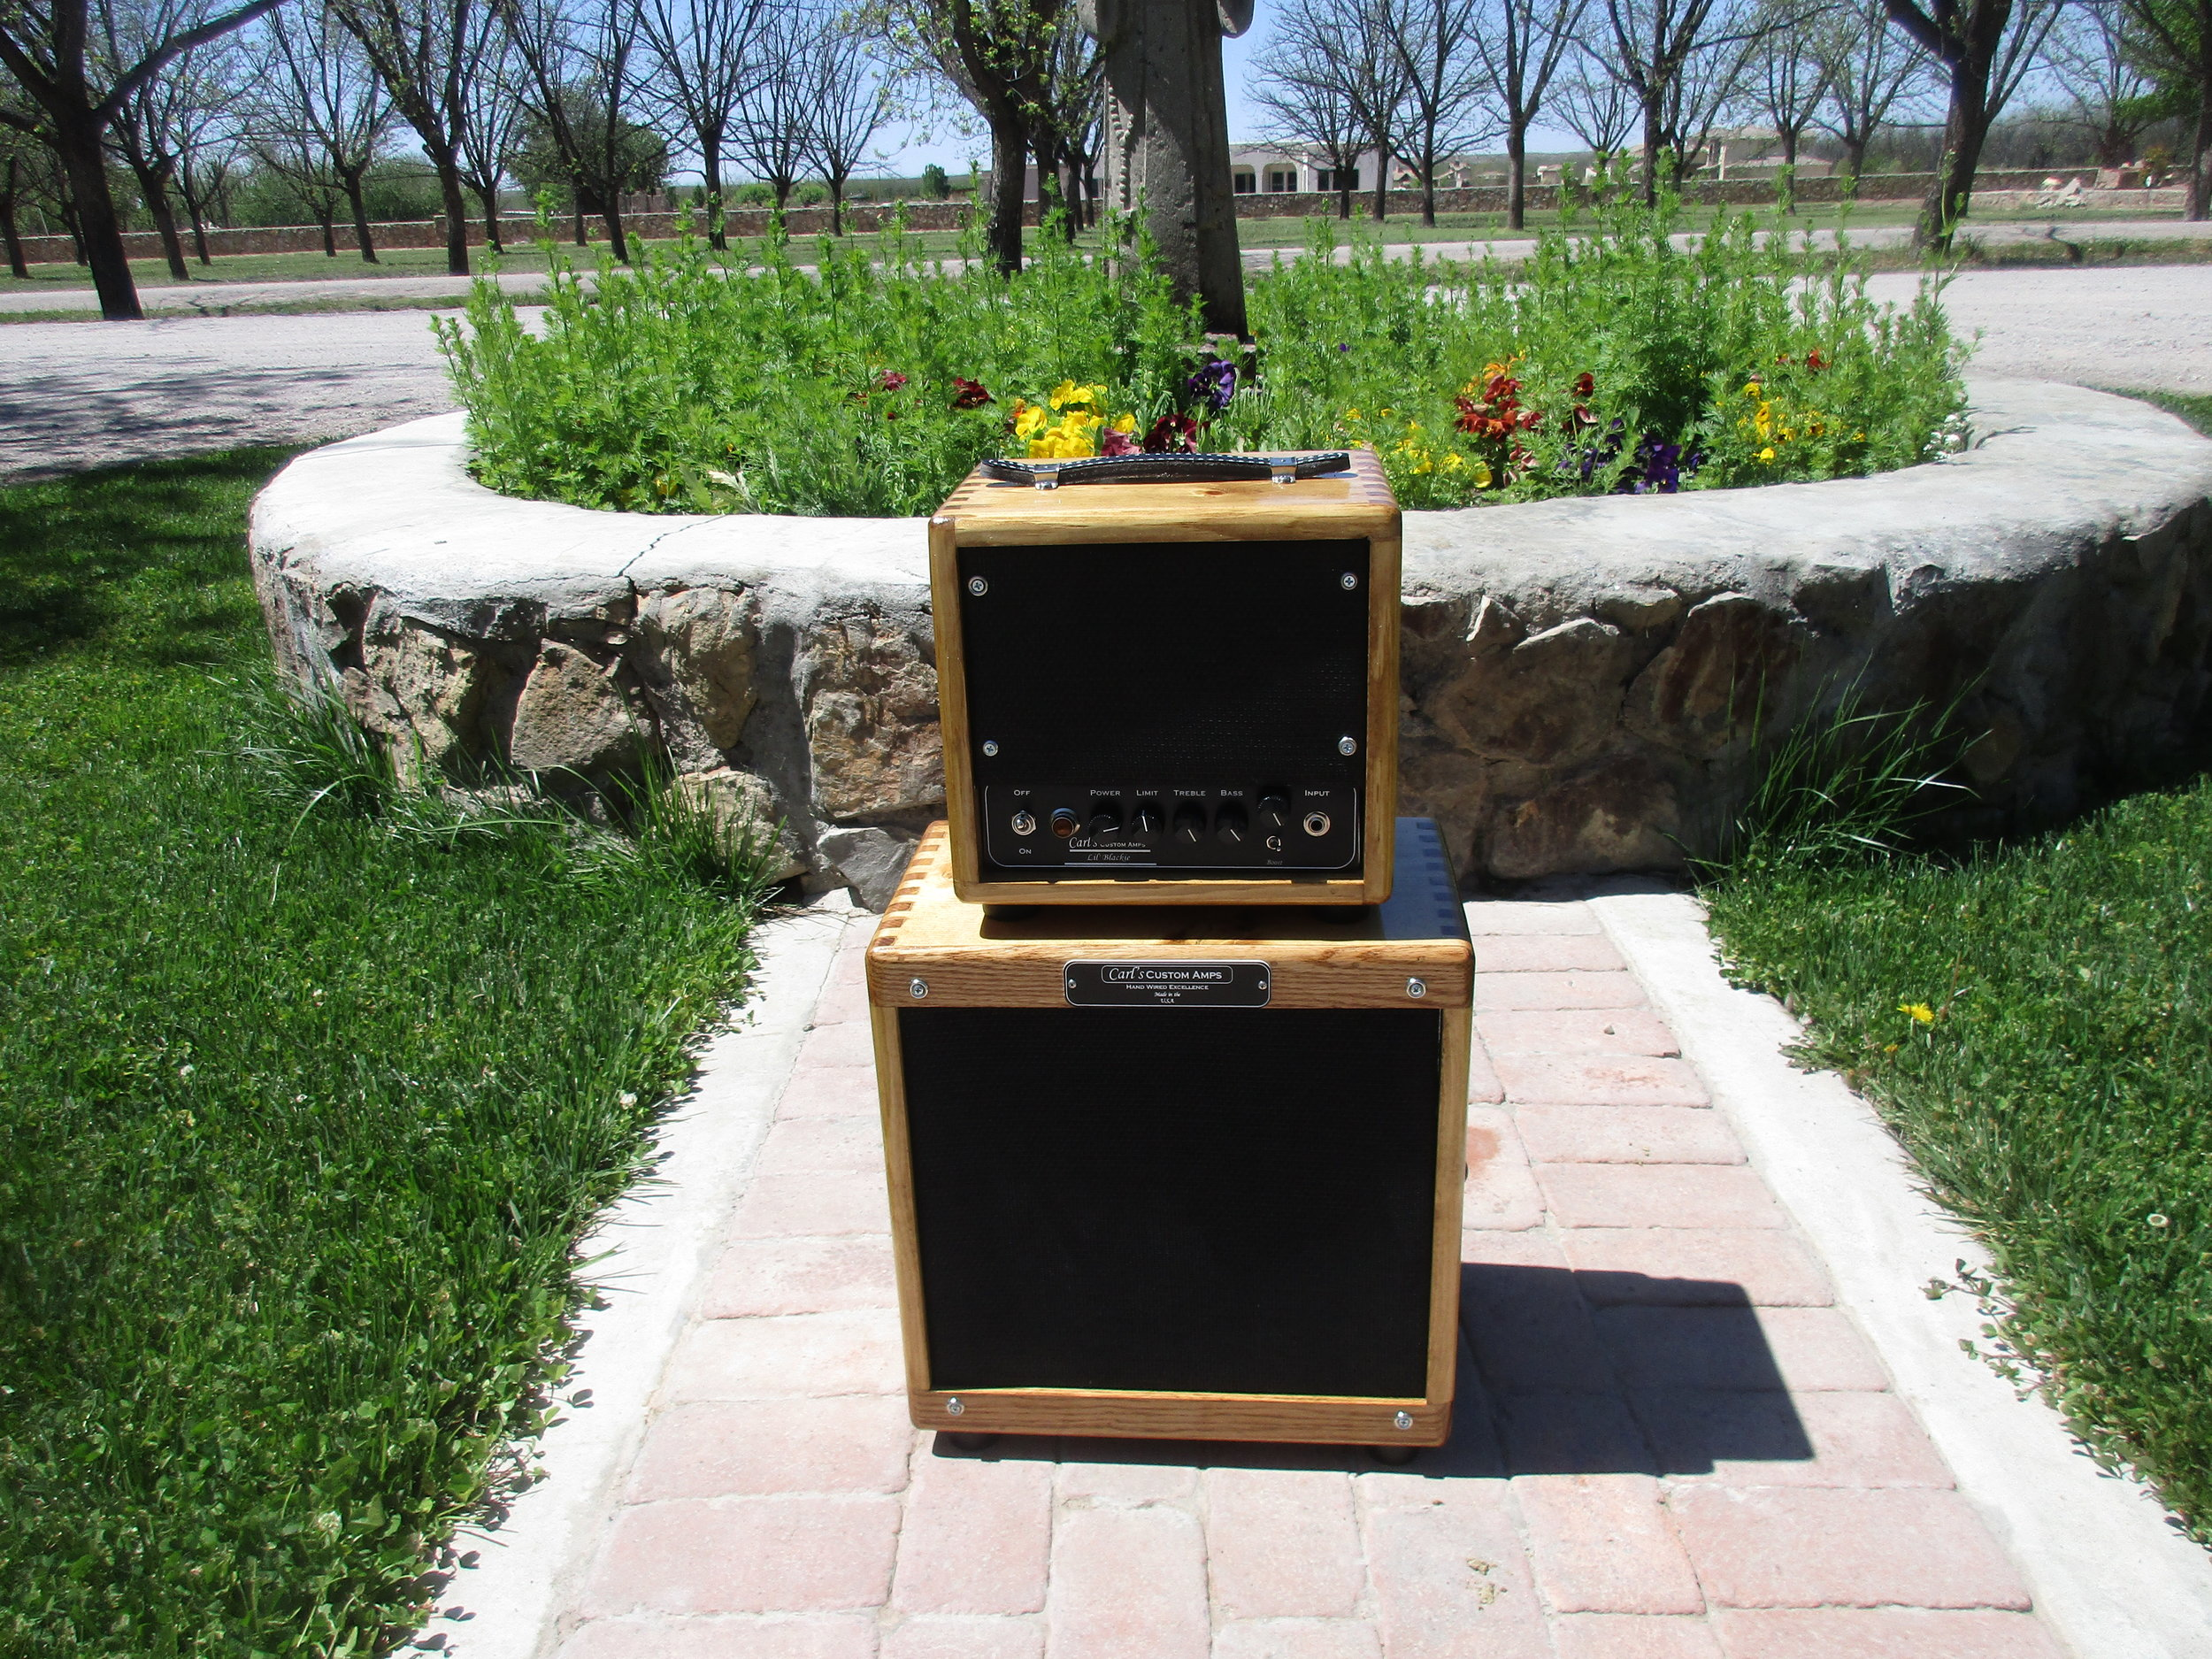 This head and cab is Blackface Champ with number of mod: variable power, tube swapping capable, and eq lift. The cab is loaded with Alinco Weber California. It a small but toneful package. I built the cab myself and they hand finished with a stain and 16 coats of my own wiping varnish. It's a lot of work man they look great!